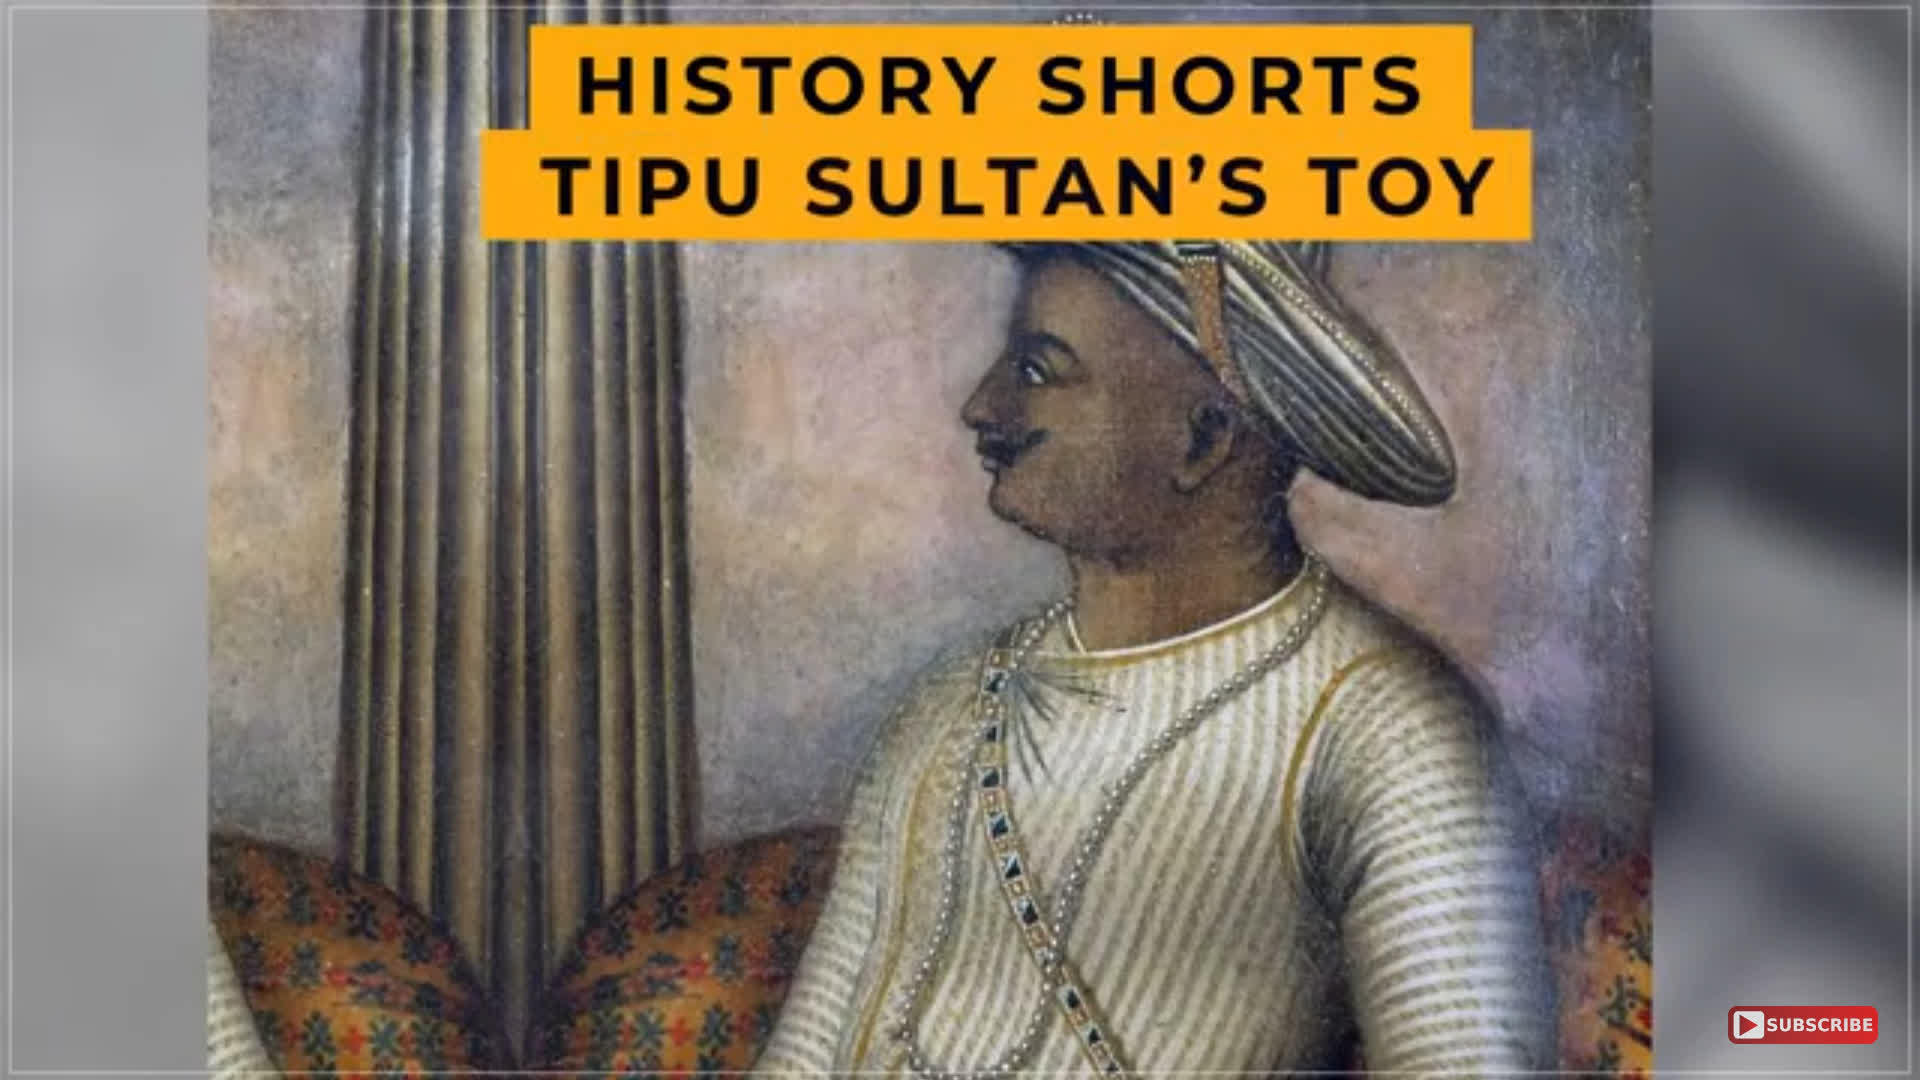 Tipu Sultan's Toy | History Shorts